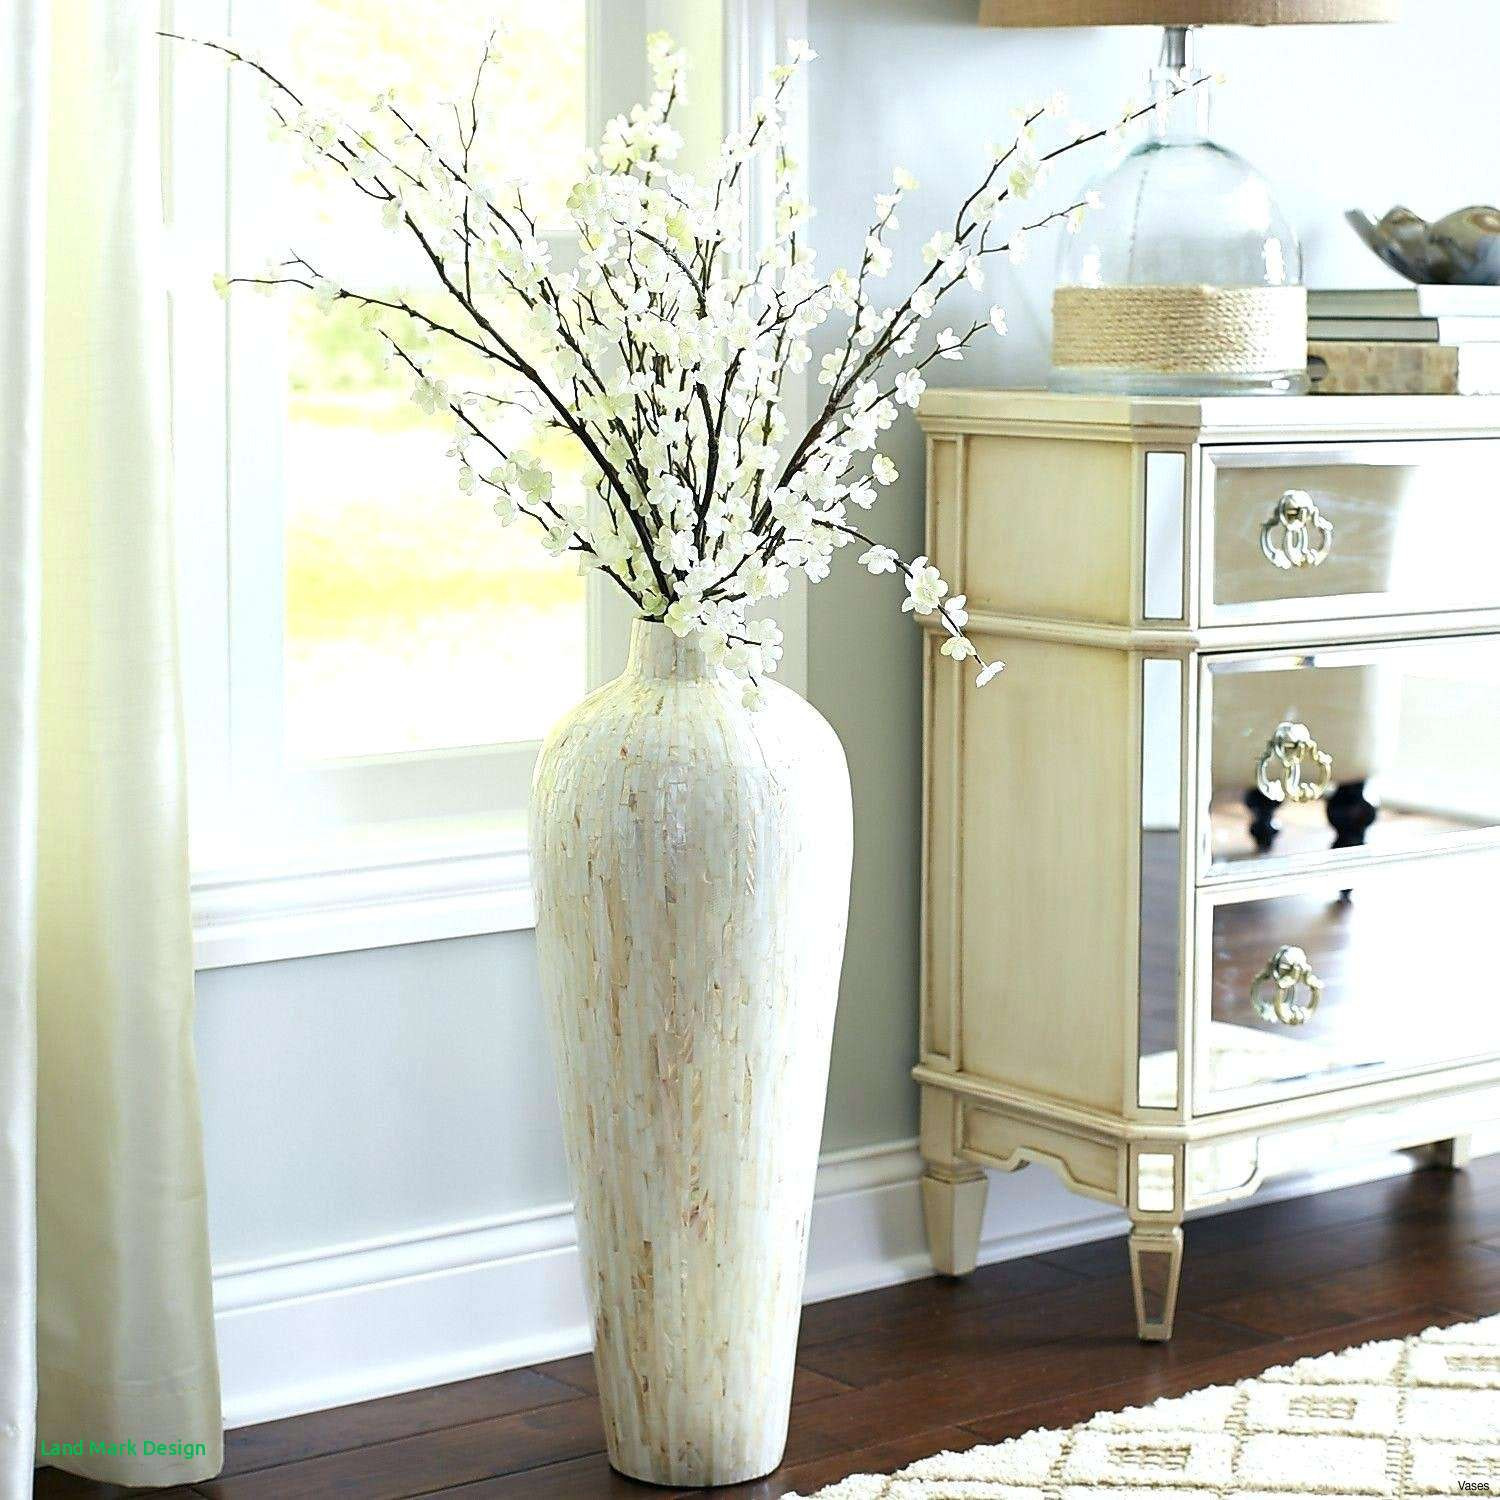 Native American Vases Of Floor Vase with Branches Images Tall Vase with Branches Design for Floor Vase with Branches Images Tall Vase with Branches Design